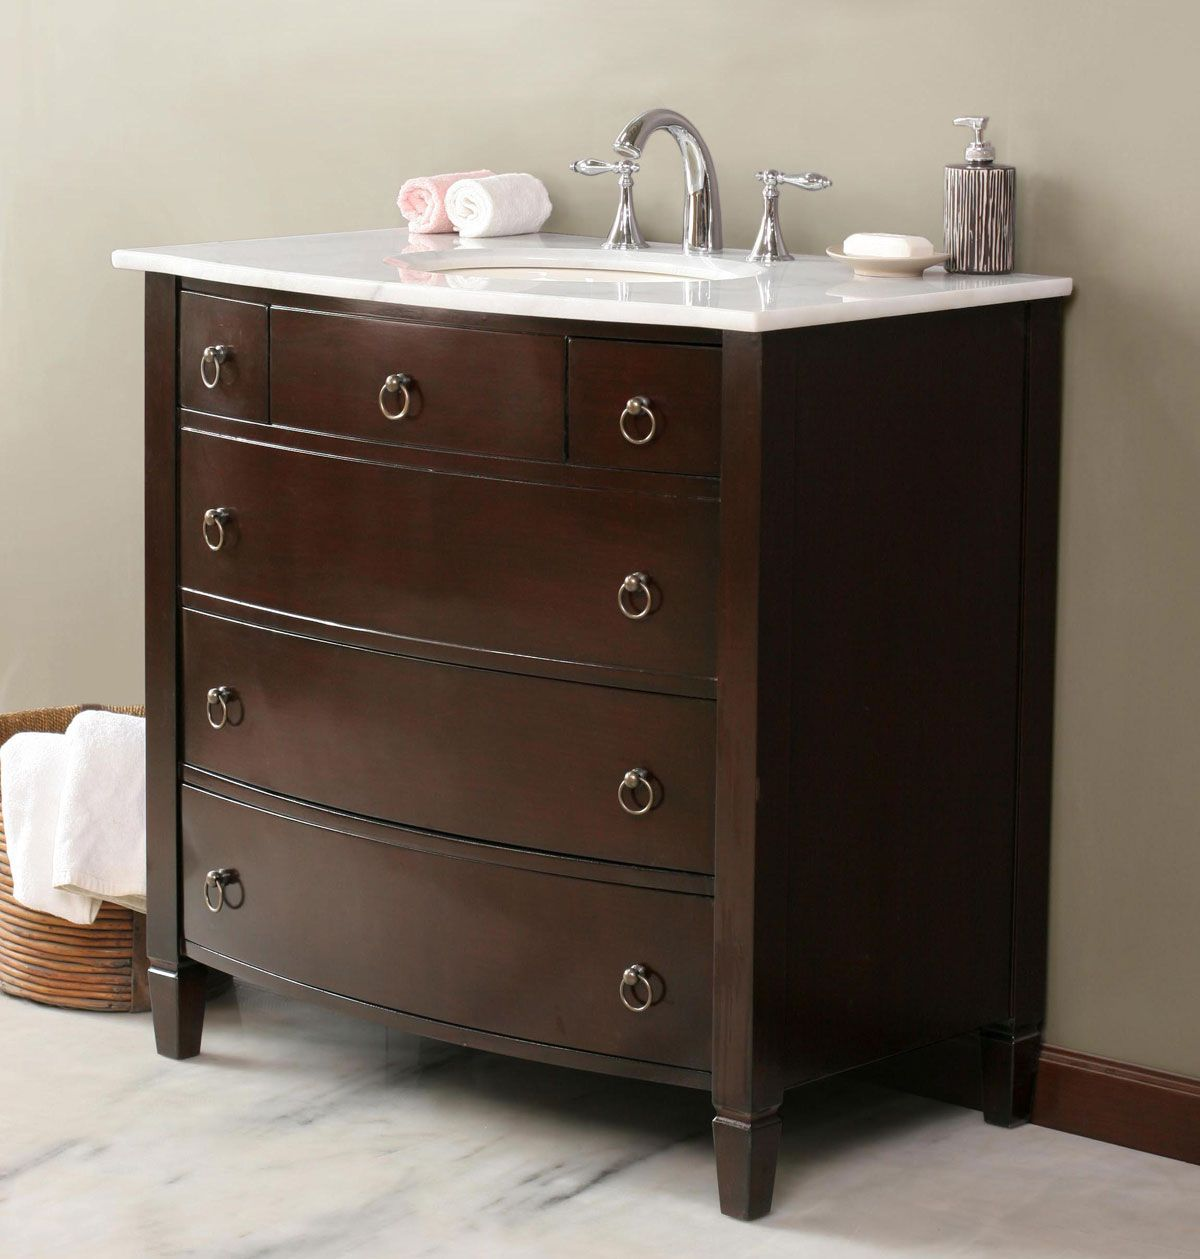 Small bathroom vanity the complement of small bathroom - Small bathroom vanity with drawers ...